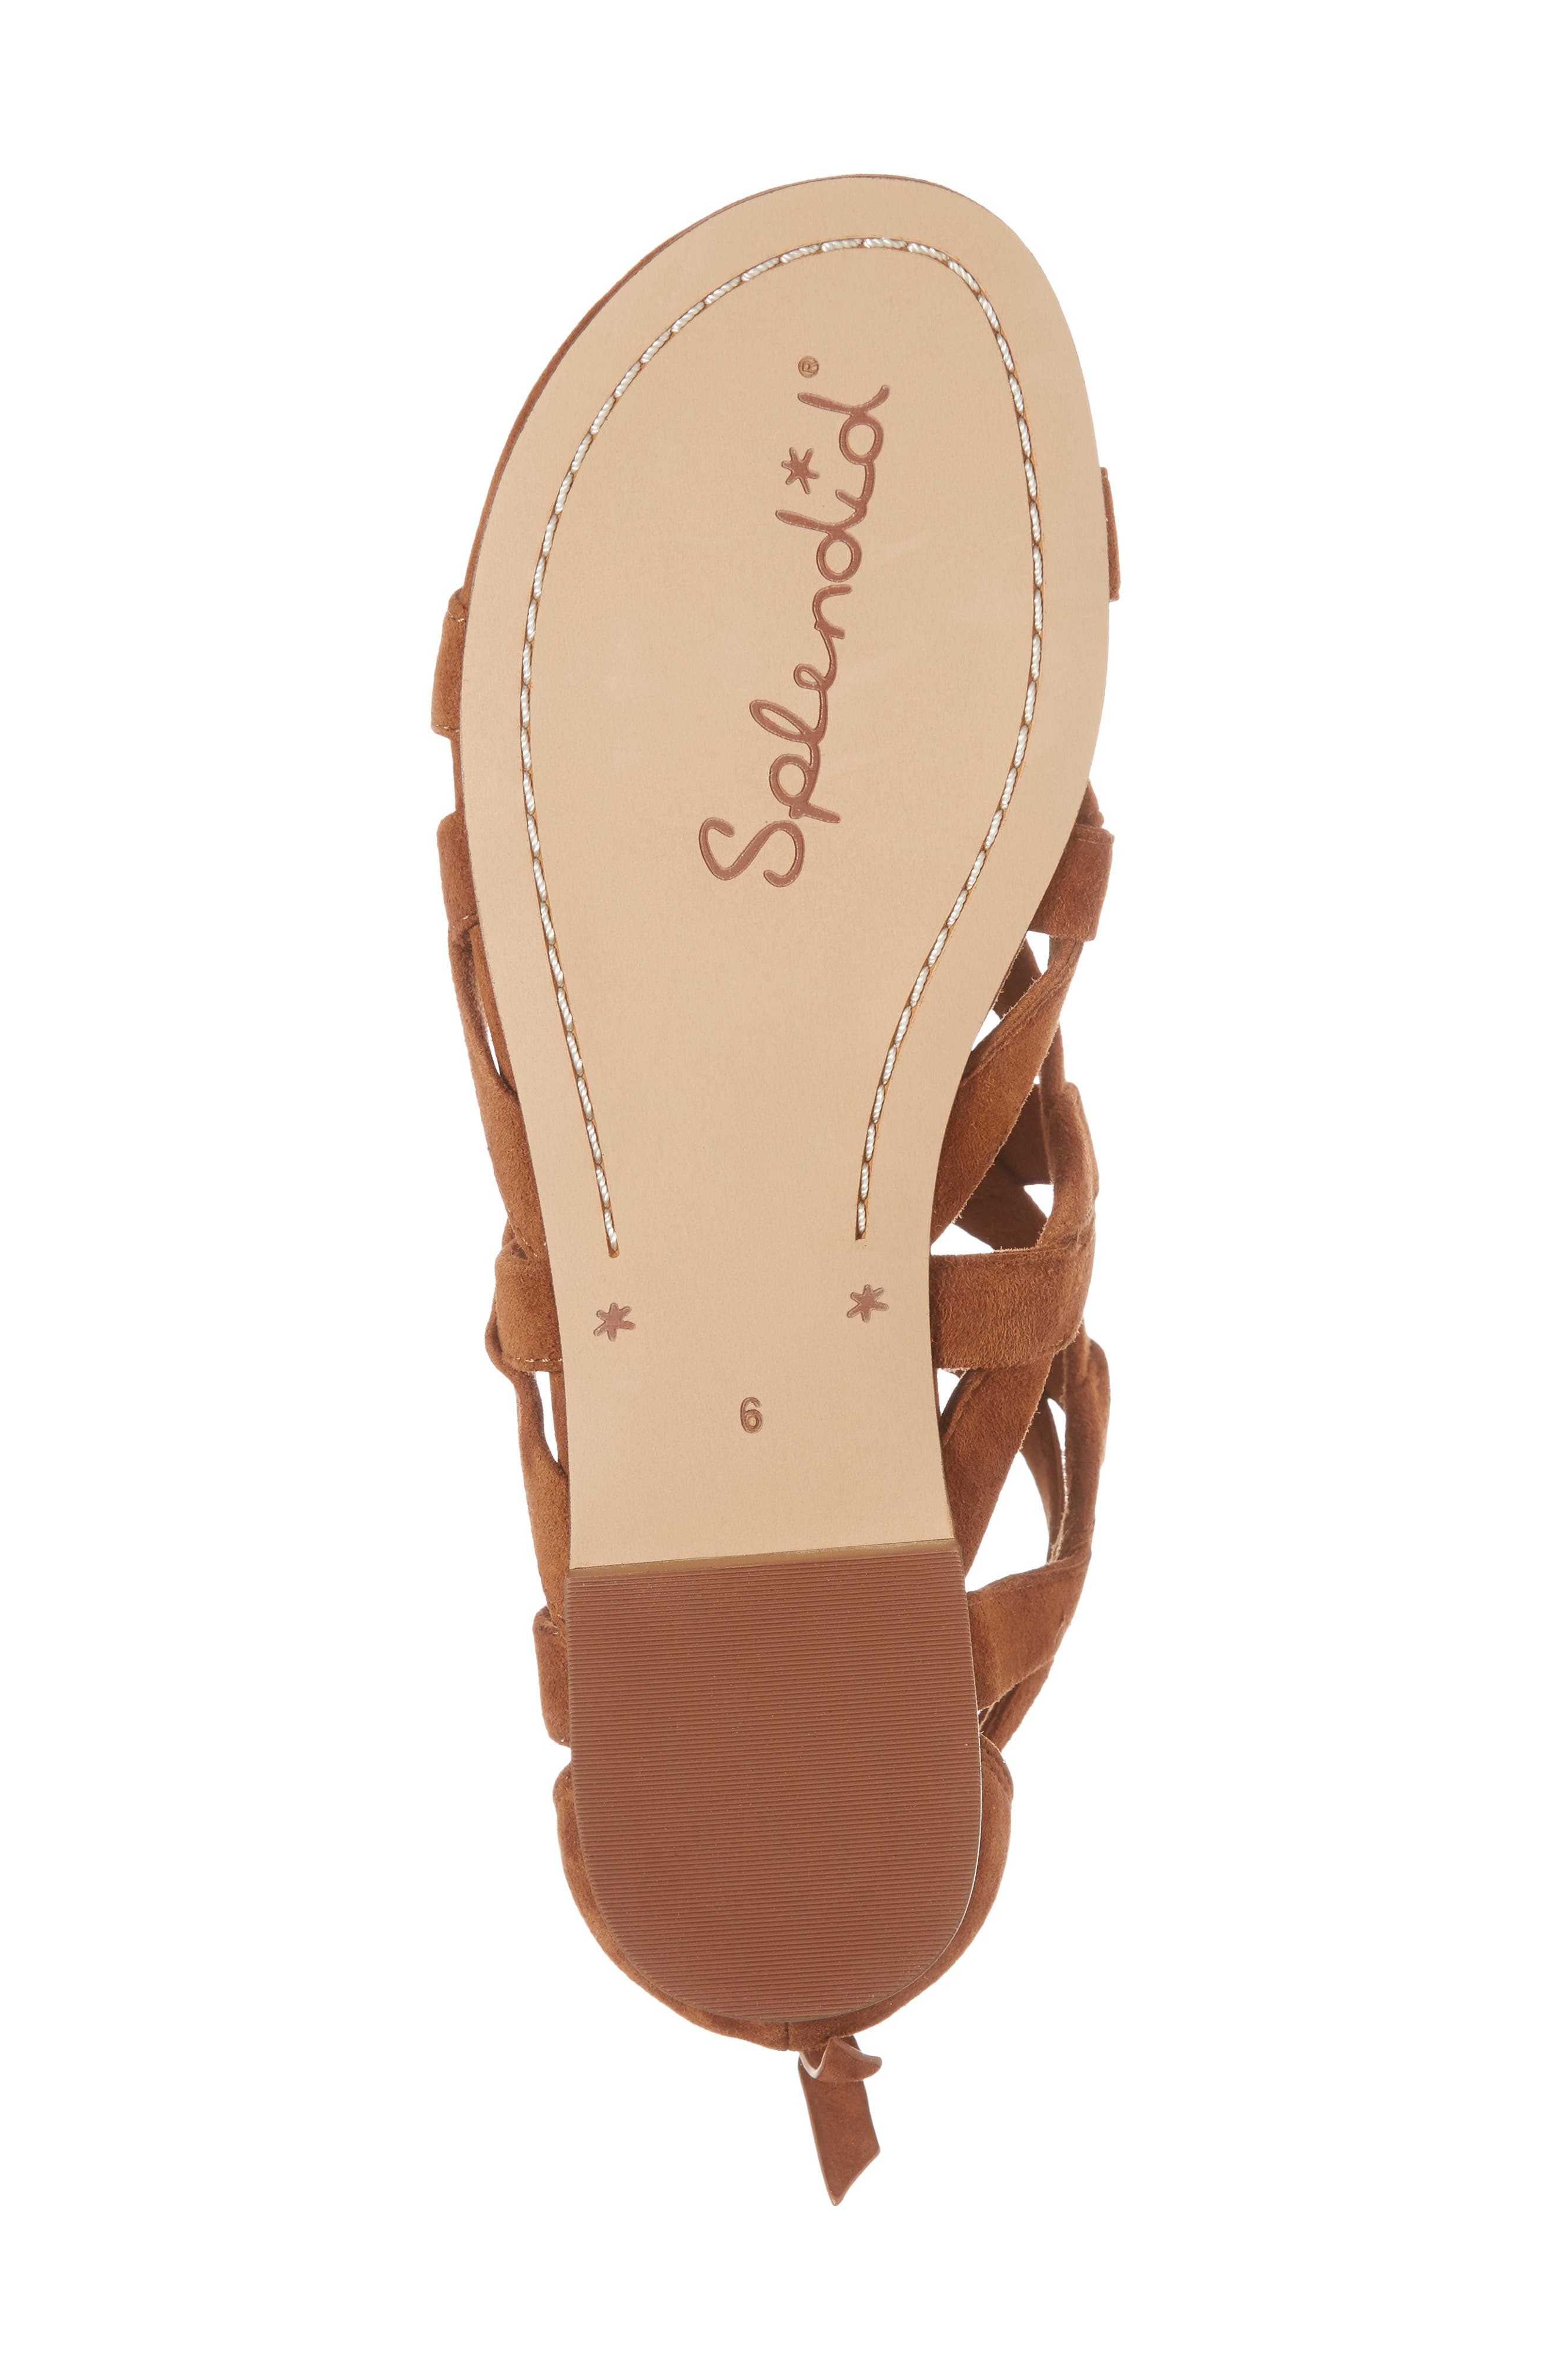 Barrett Mid Top Cage Sandal,                             Alternate thumbnail 6, color,                             Caramel Suede